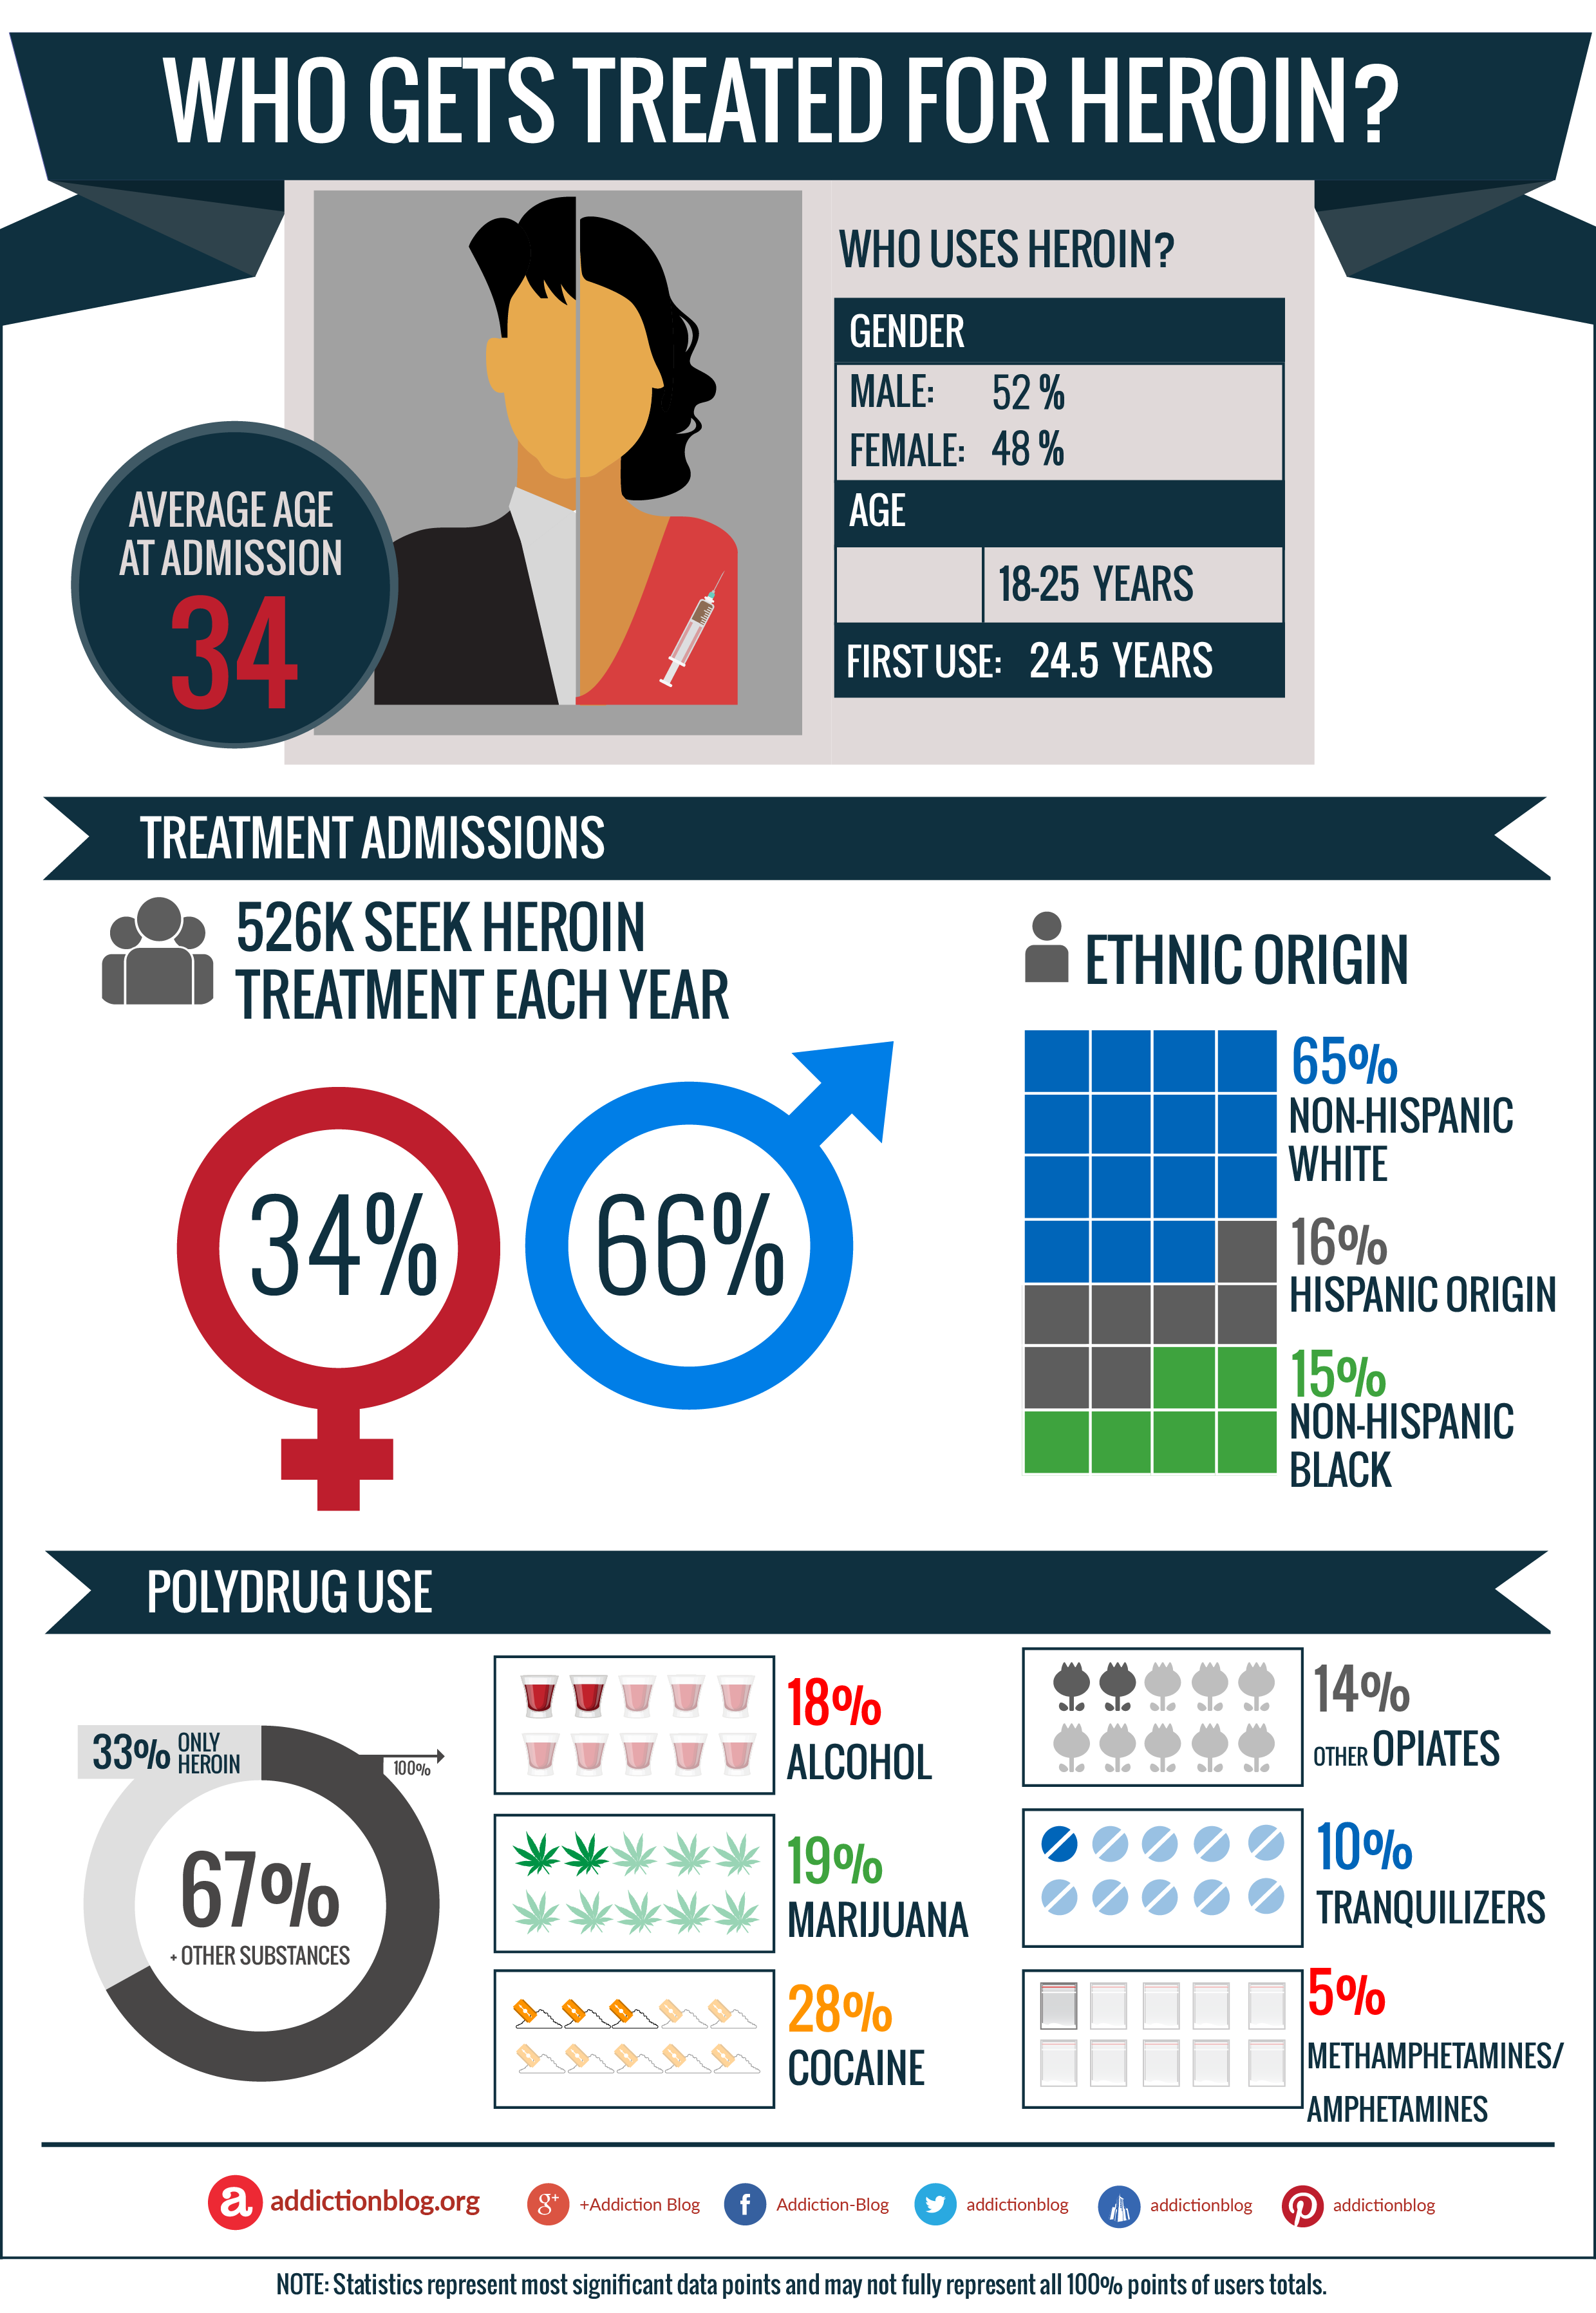 Heroin addiction help: Who gets treated for heroin? (INFOGRAPHIC)